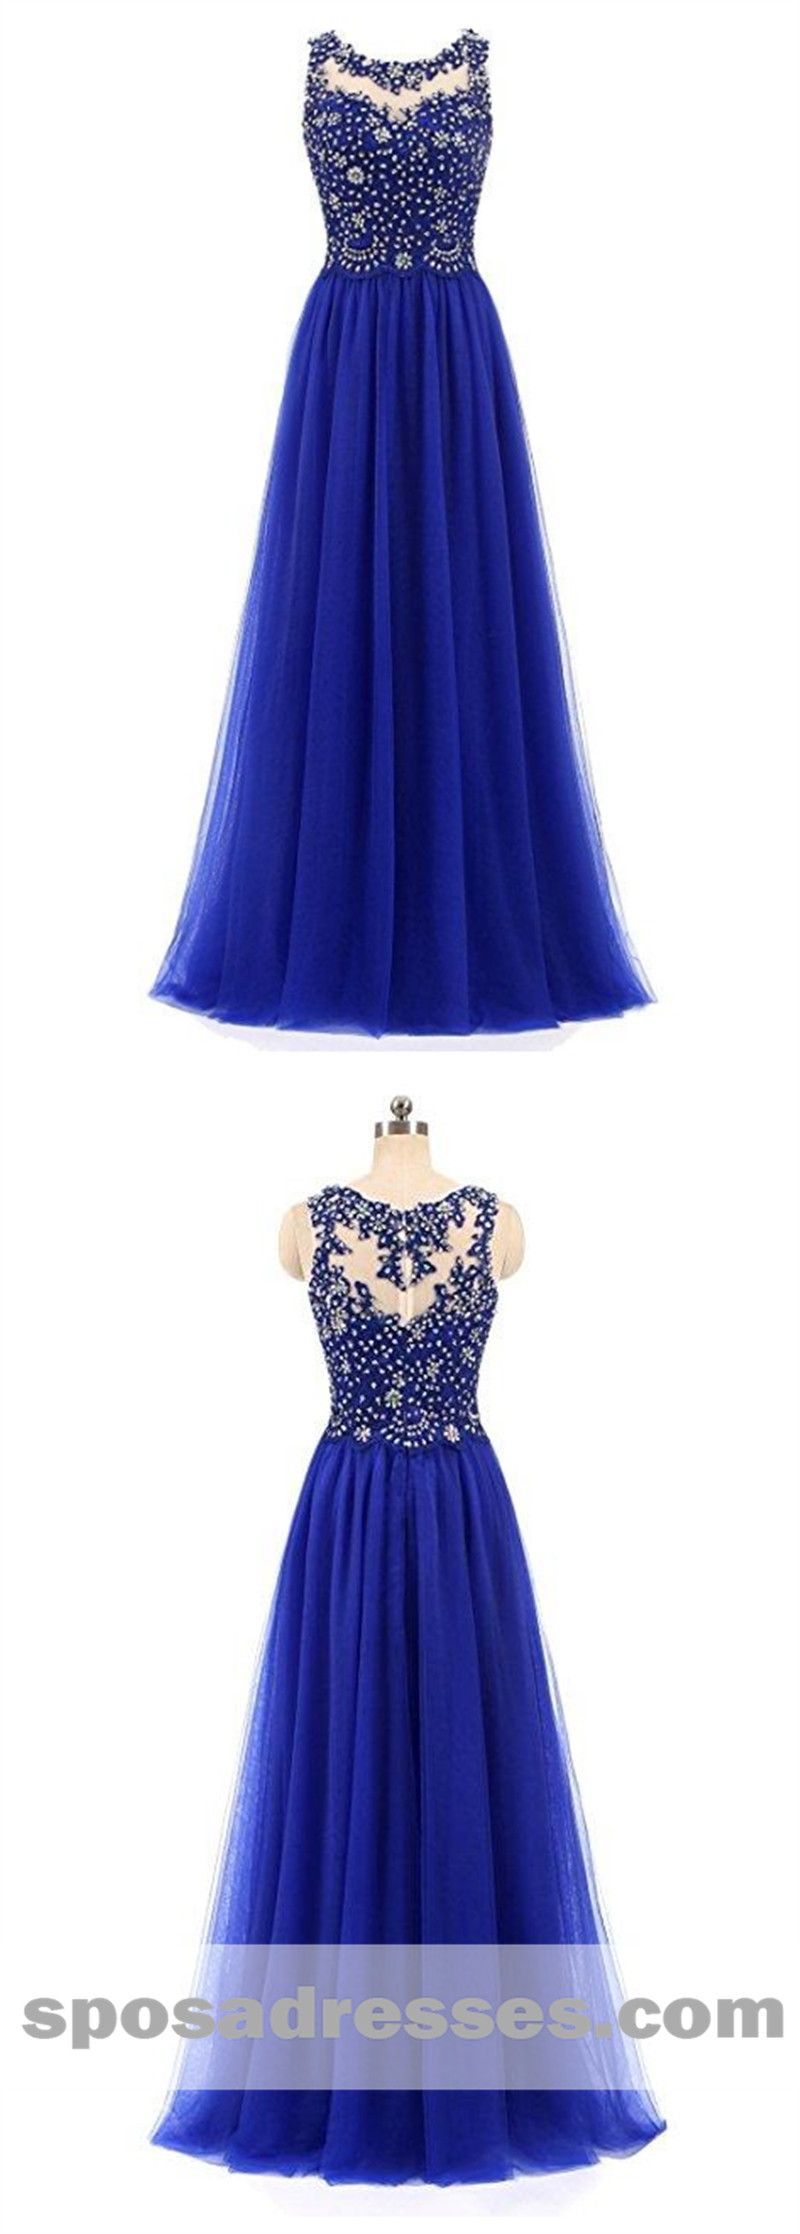 Royal blue lace beaded see through chiffon long evening prom dresses